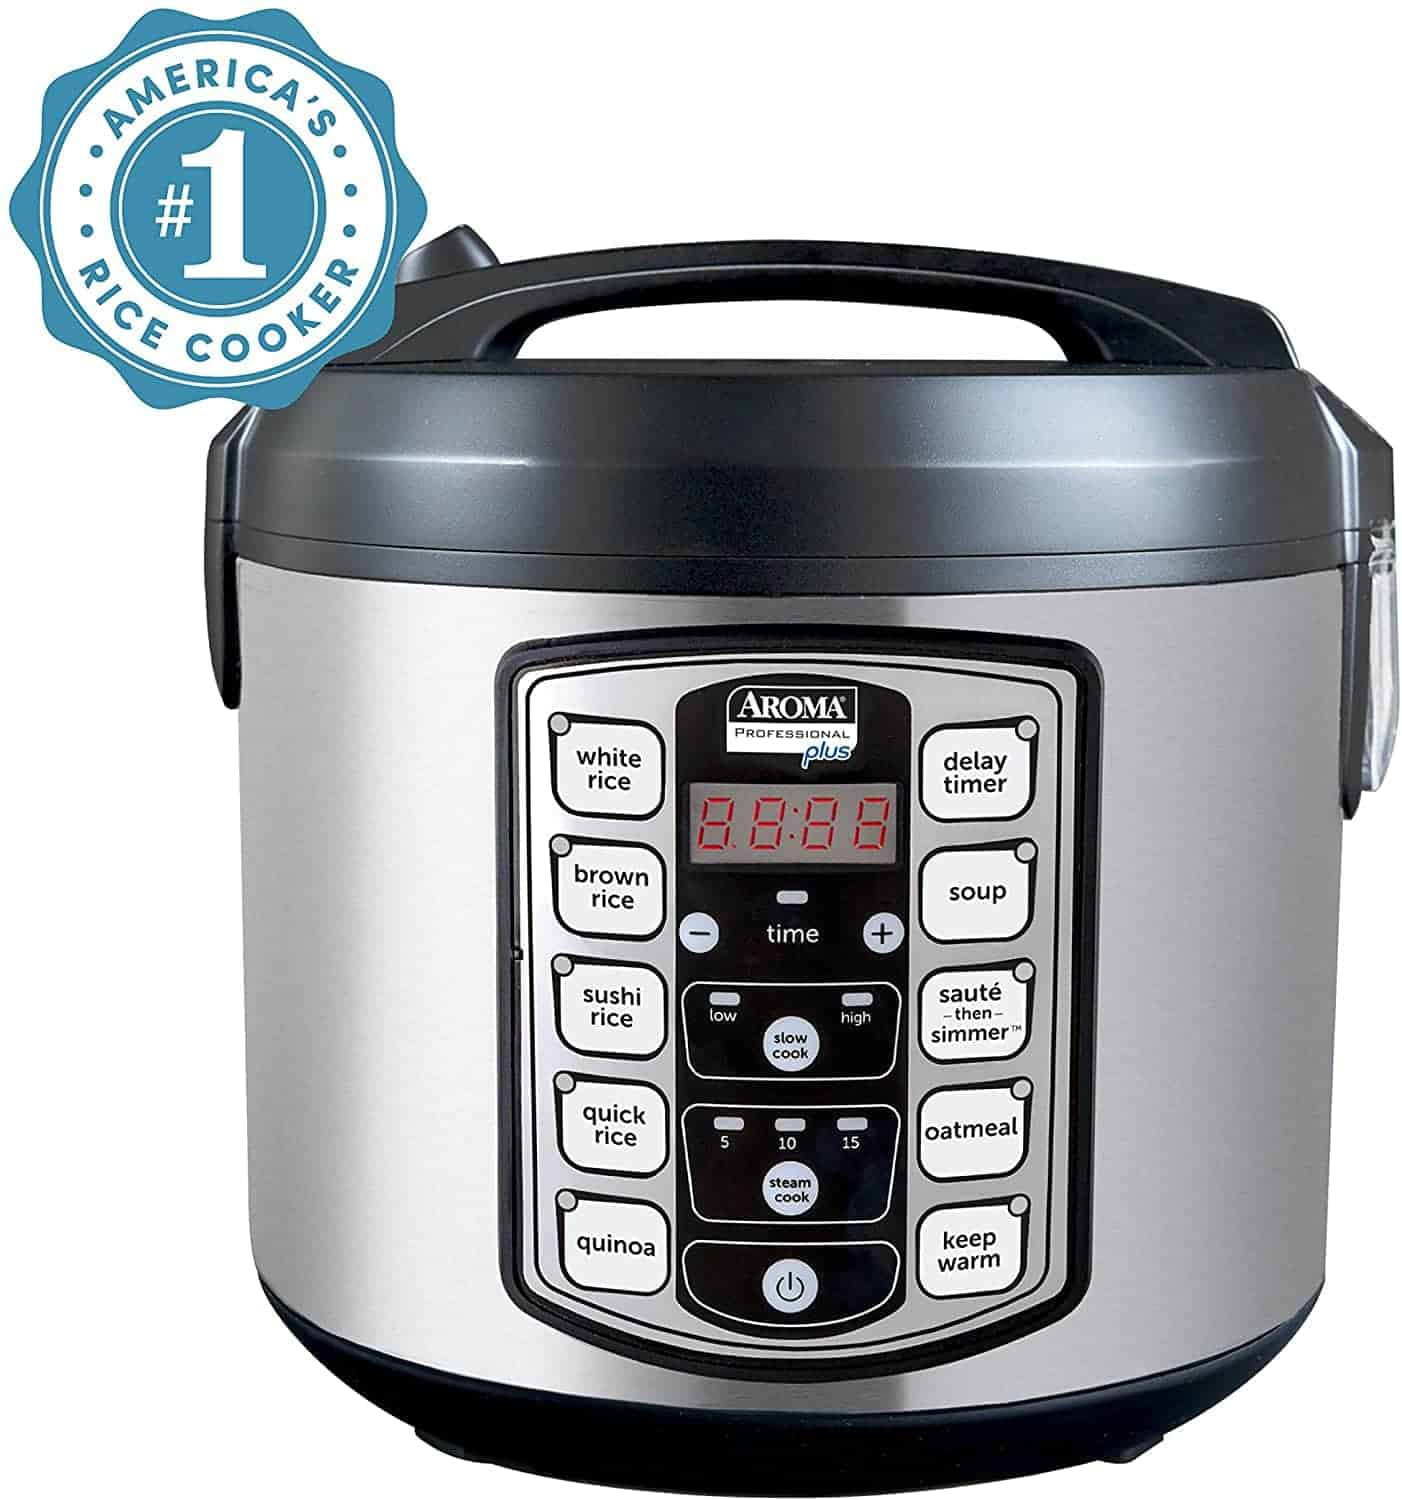 Aroma Housewares Stainless Steel Rice Cooker for Families